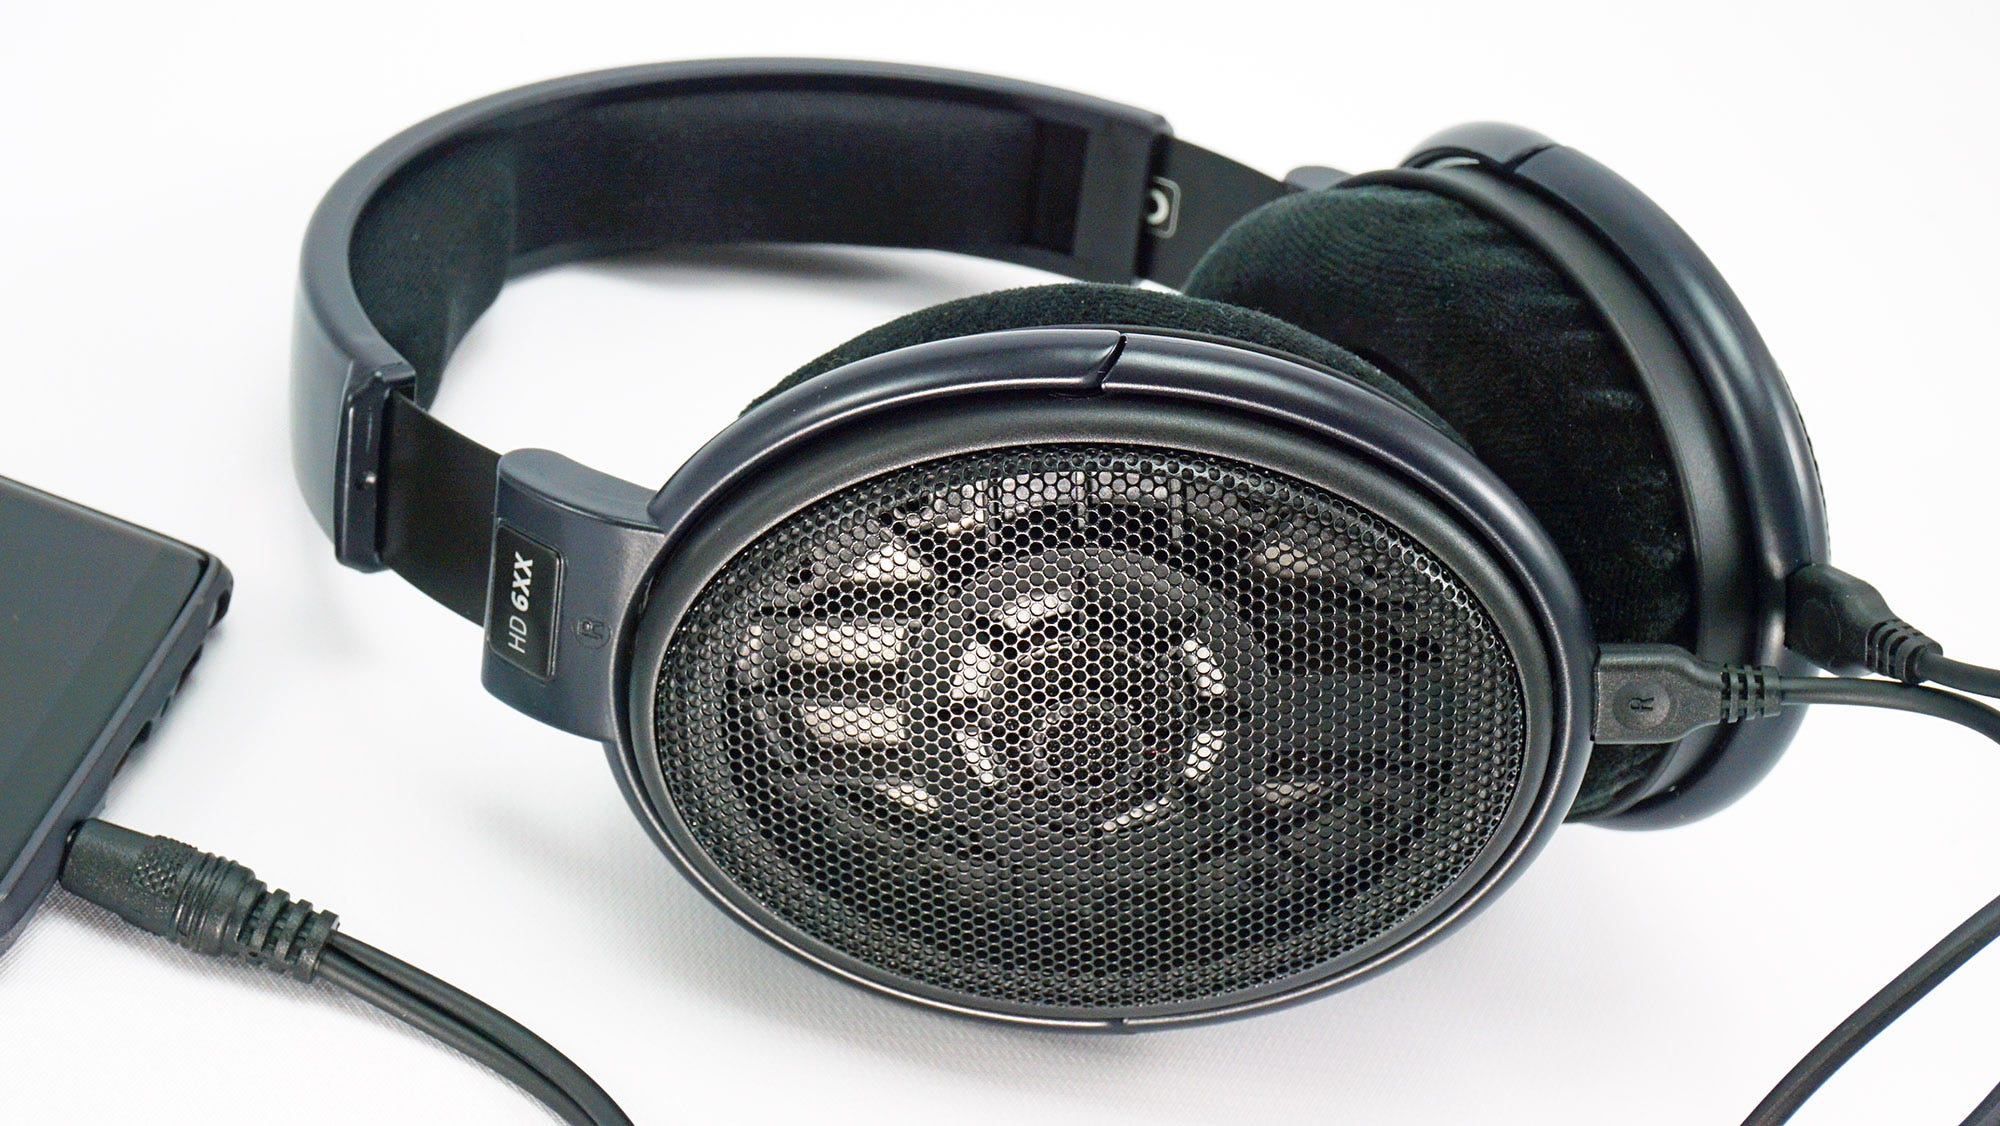 The Massdrop x Sennheiser HD 6XX plugged into a phone.